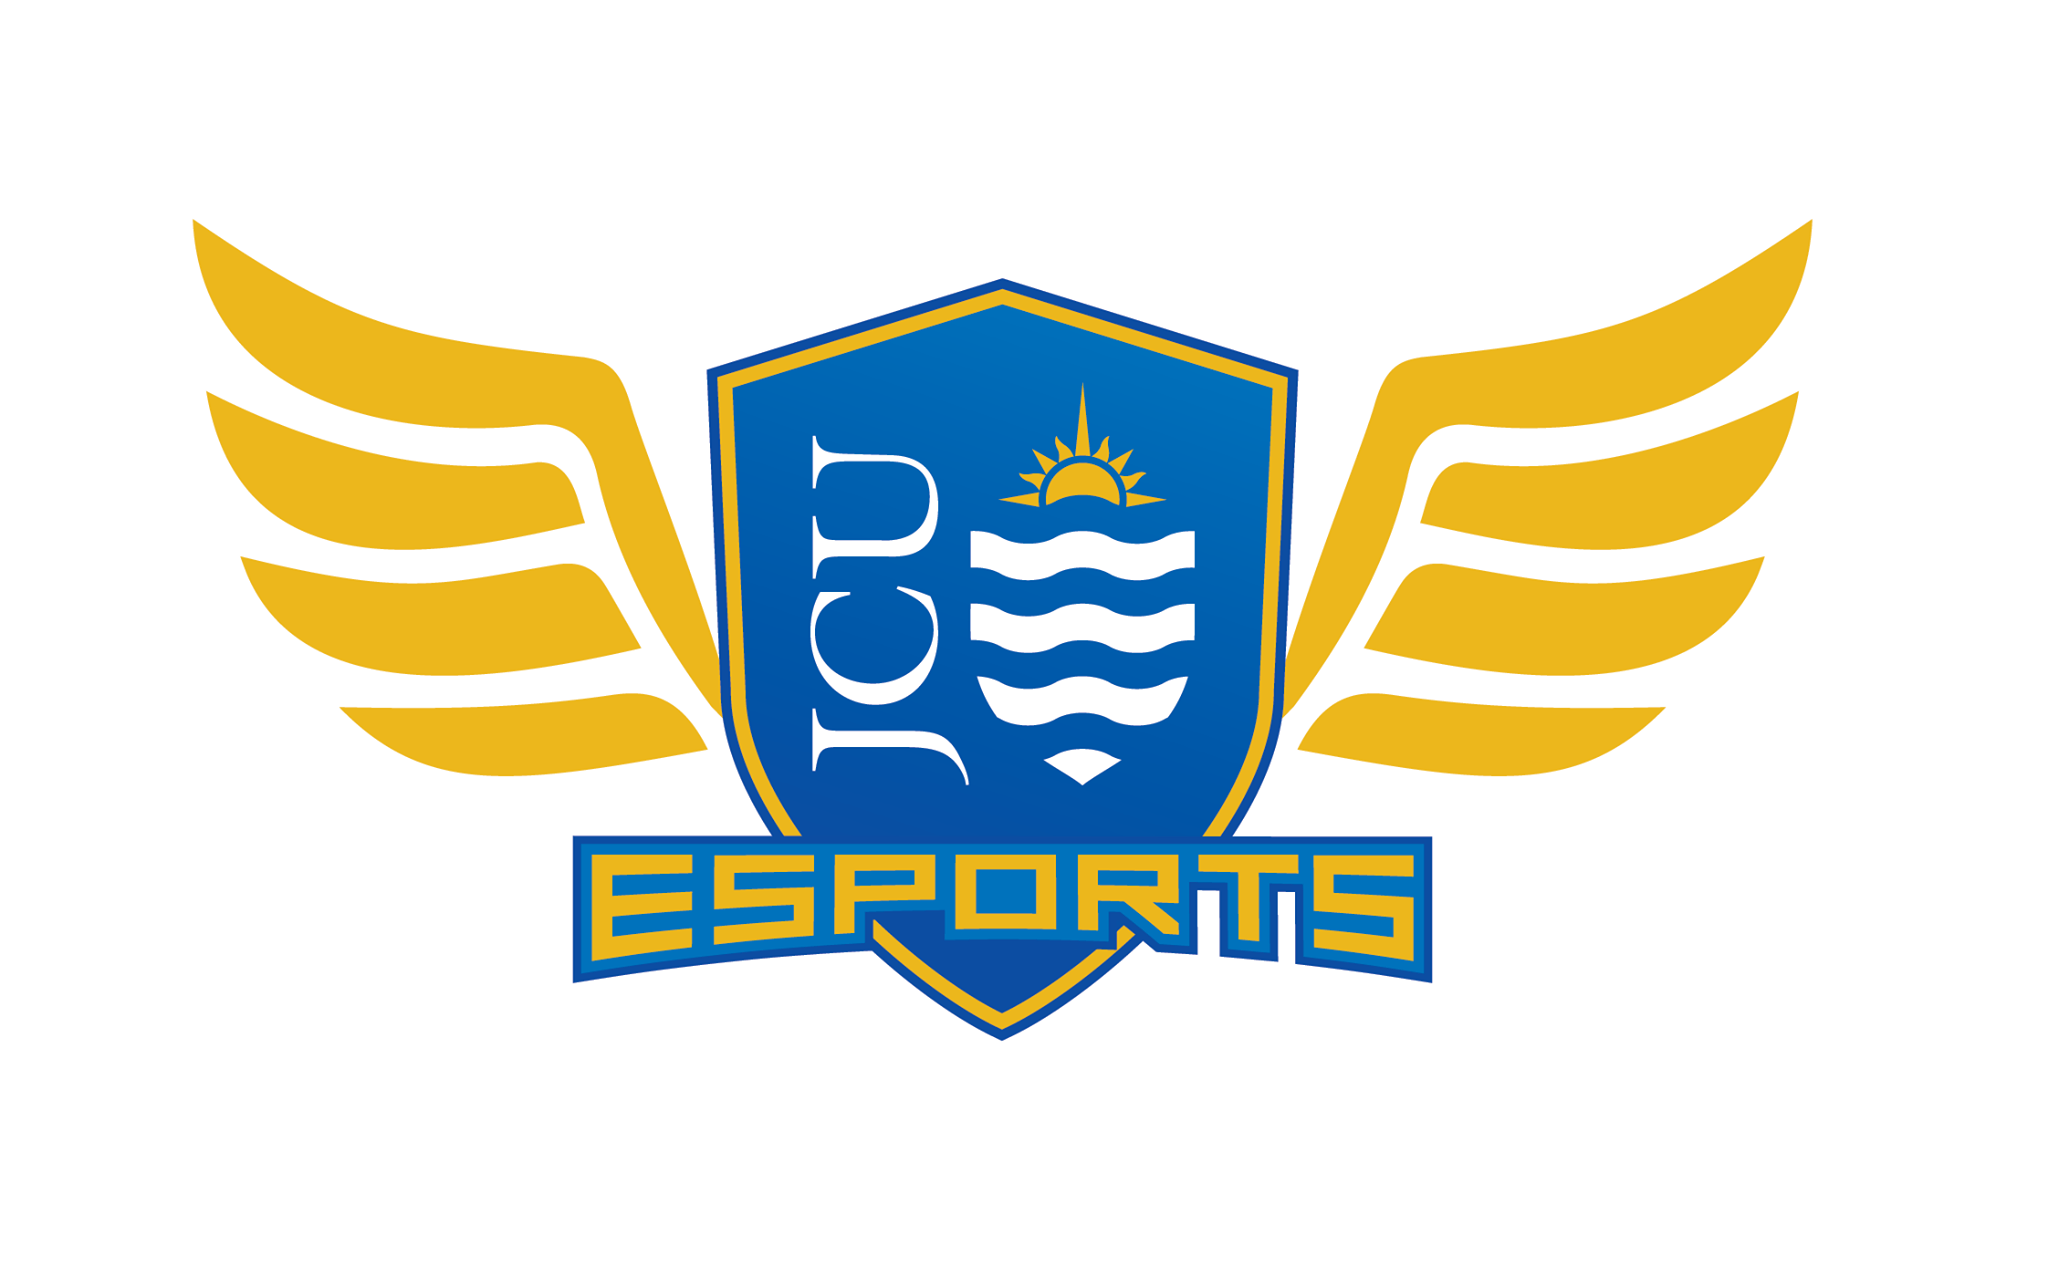 The eSports logo featuring a blue and gold shield with wings